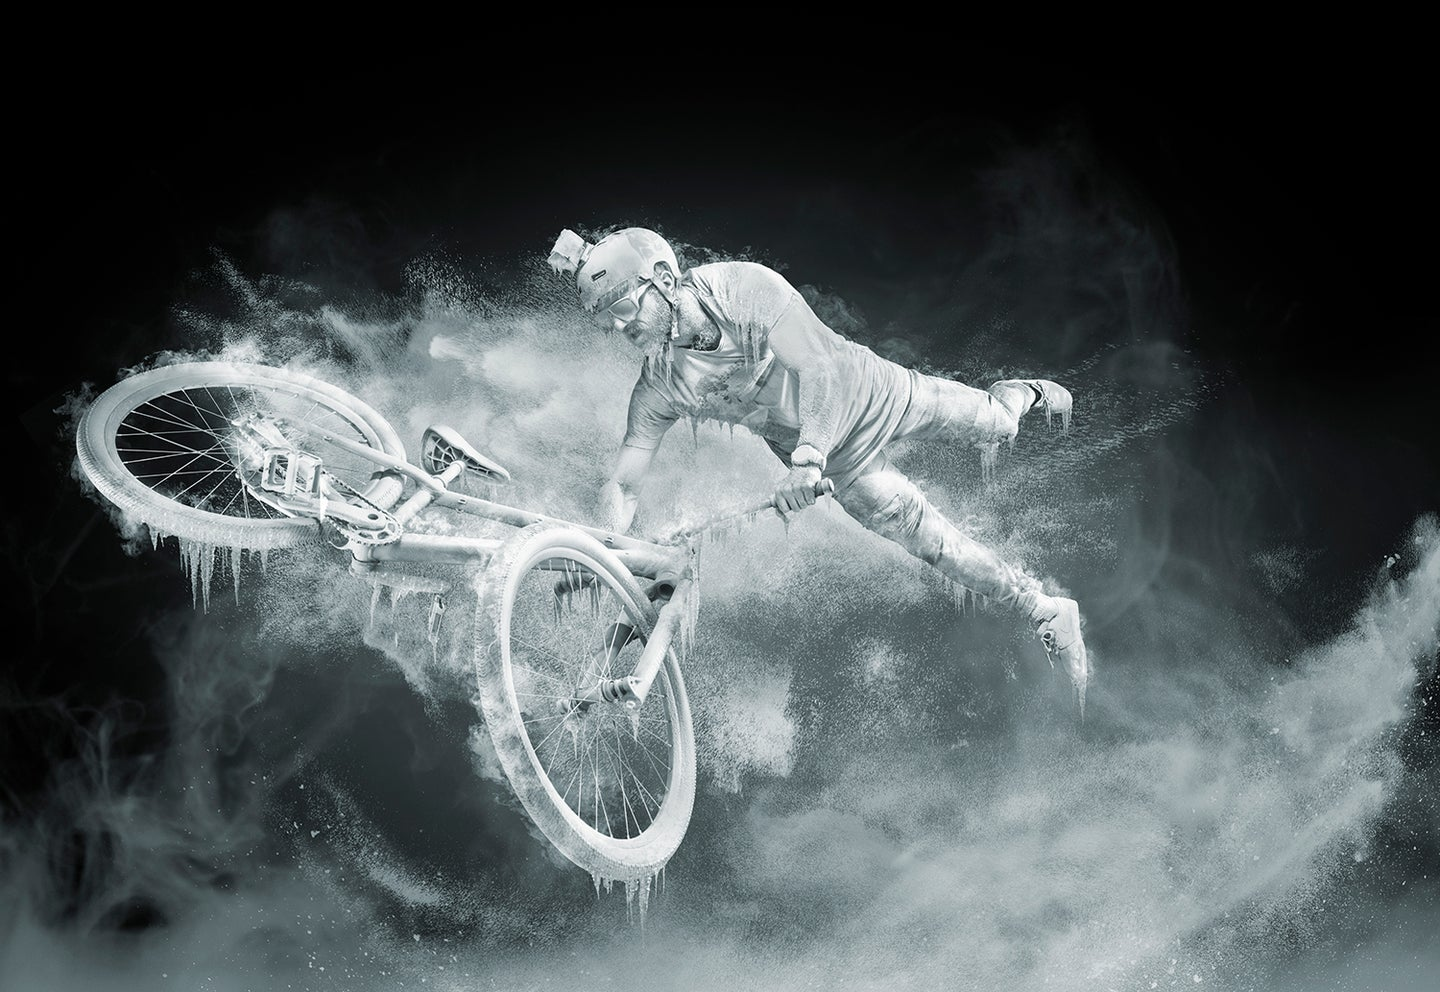 Paul Alekhin covered in ice and snow on bicycle